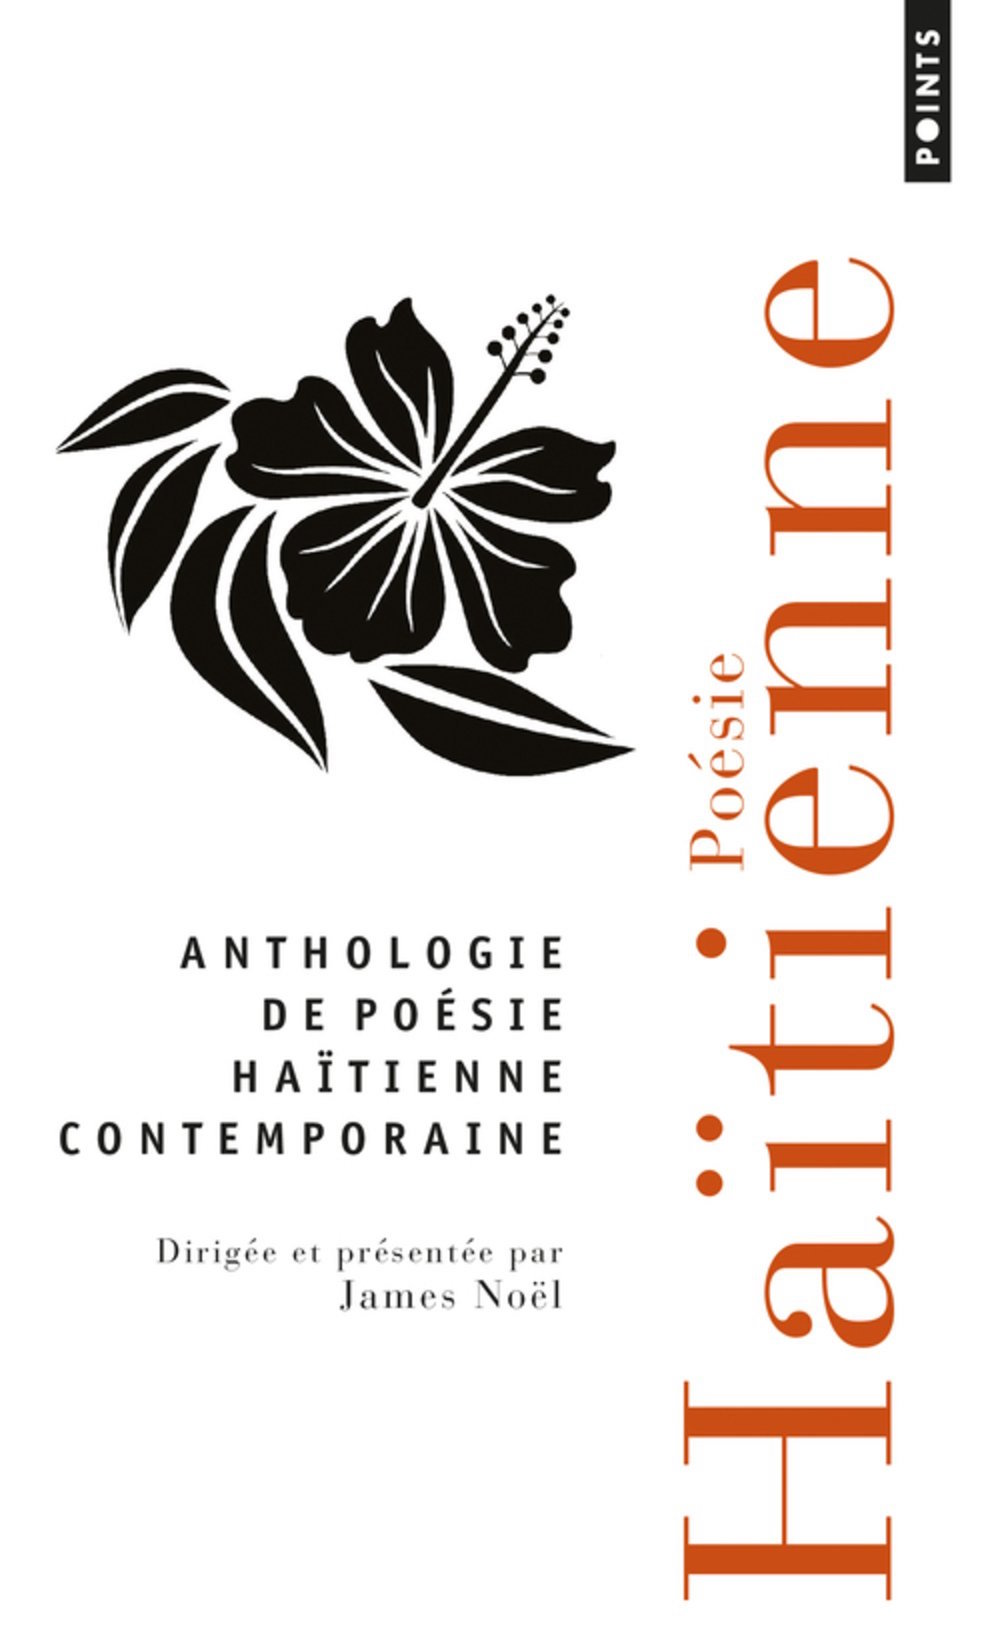 In Haiti, poets are like rap stars. Their wit and sorrows tells us what time it is. James Noel's magnificent   Anthologie de Poésie Haitienne Contemporaine   is a crackling dinner party featuring Haiti's 73 finest poets. Available only in French so far, it's a great, complete guide to the souls of a people seemingly impervious to disasters and rotten luck.